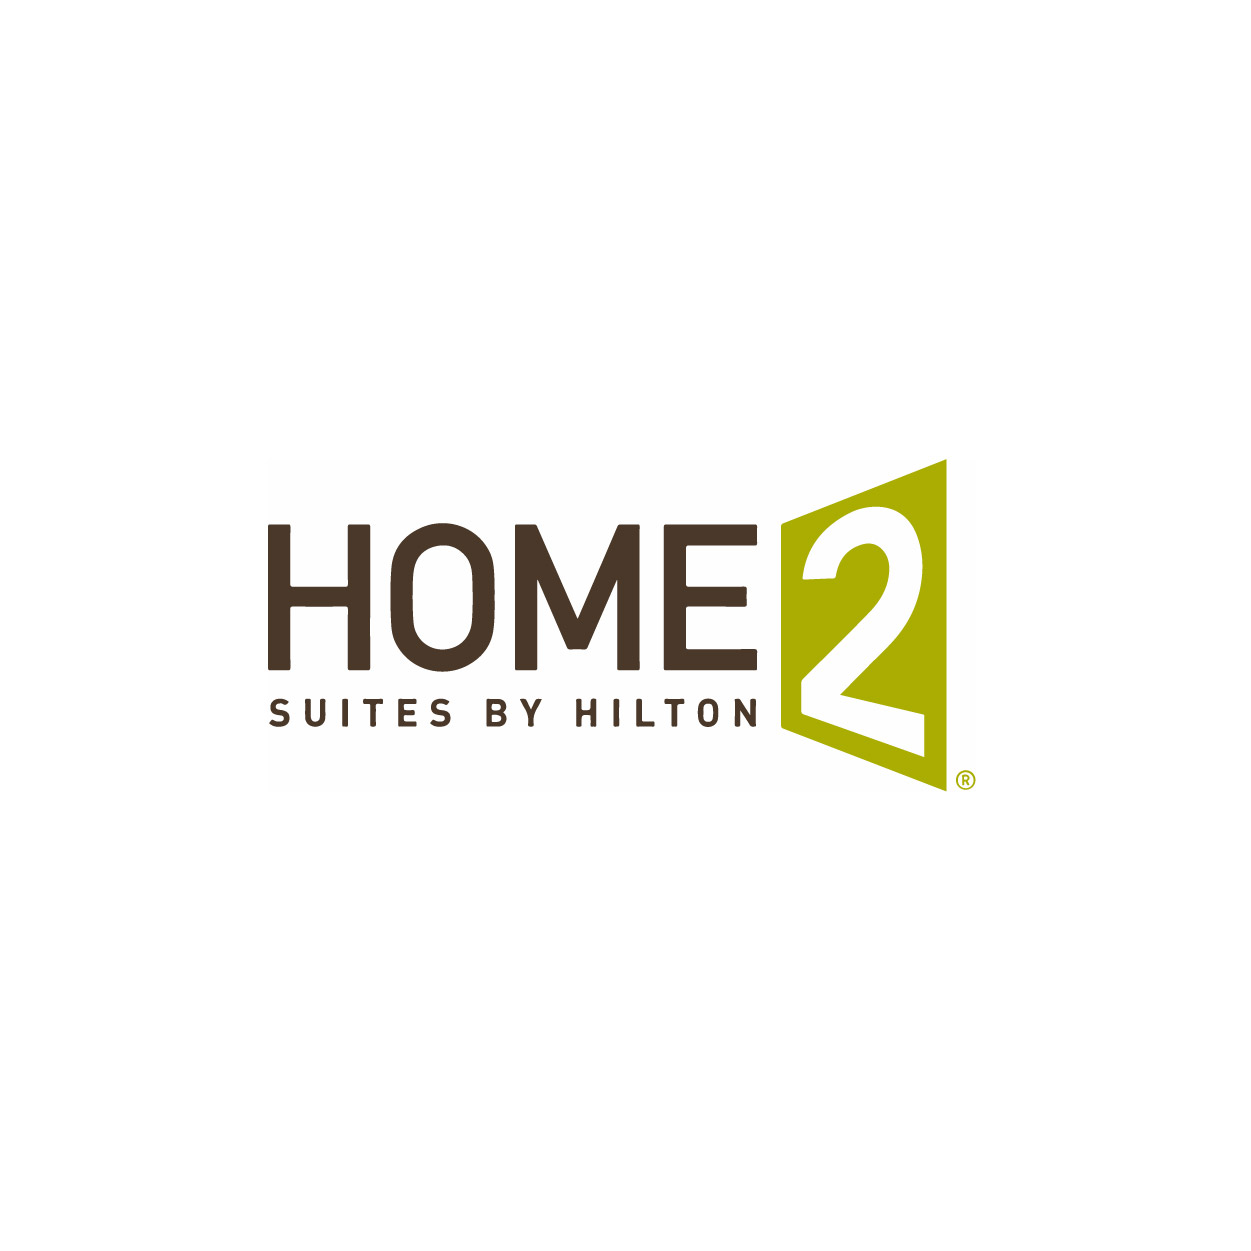 Home 2 Suites by Hilton Logo